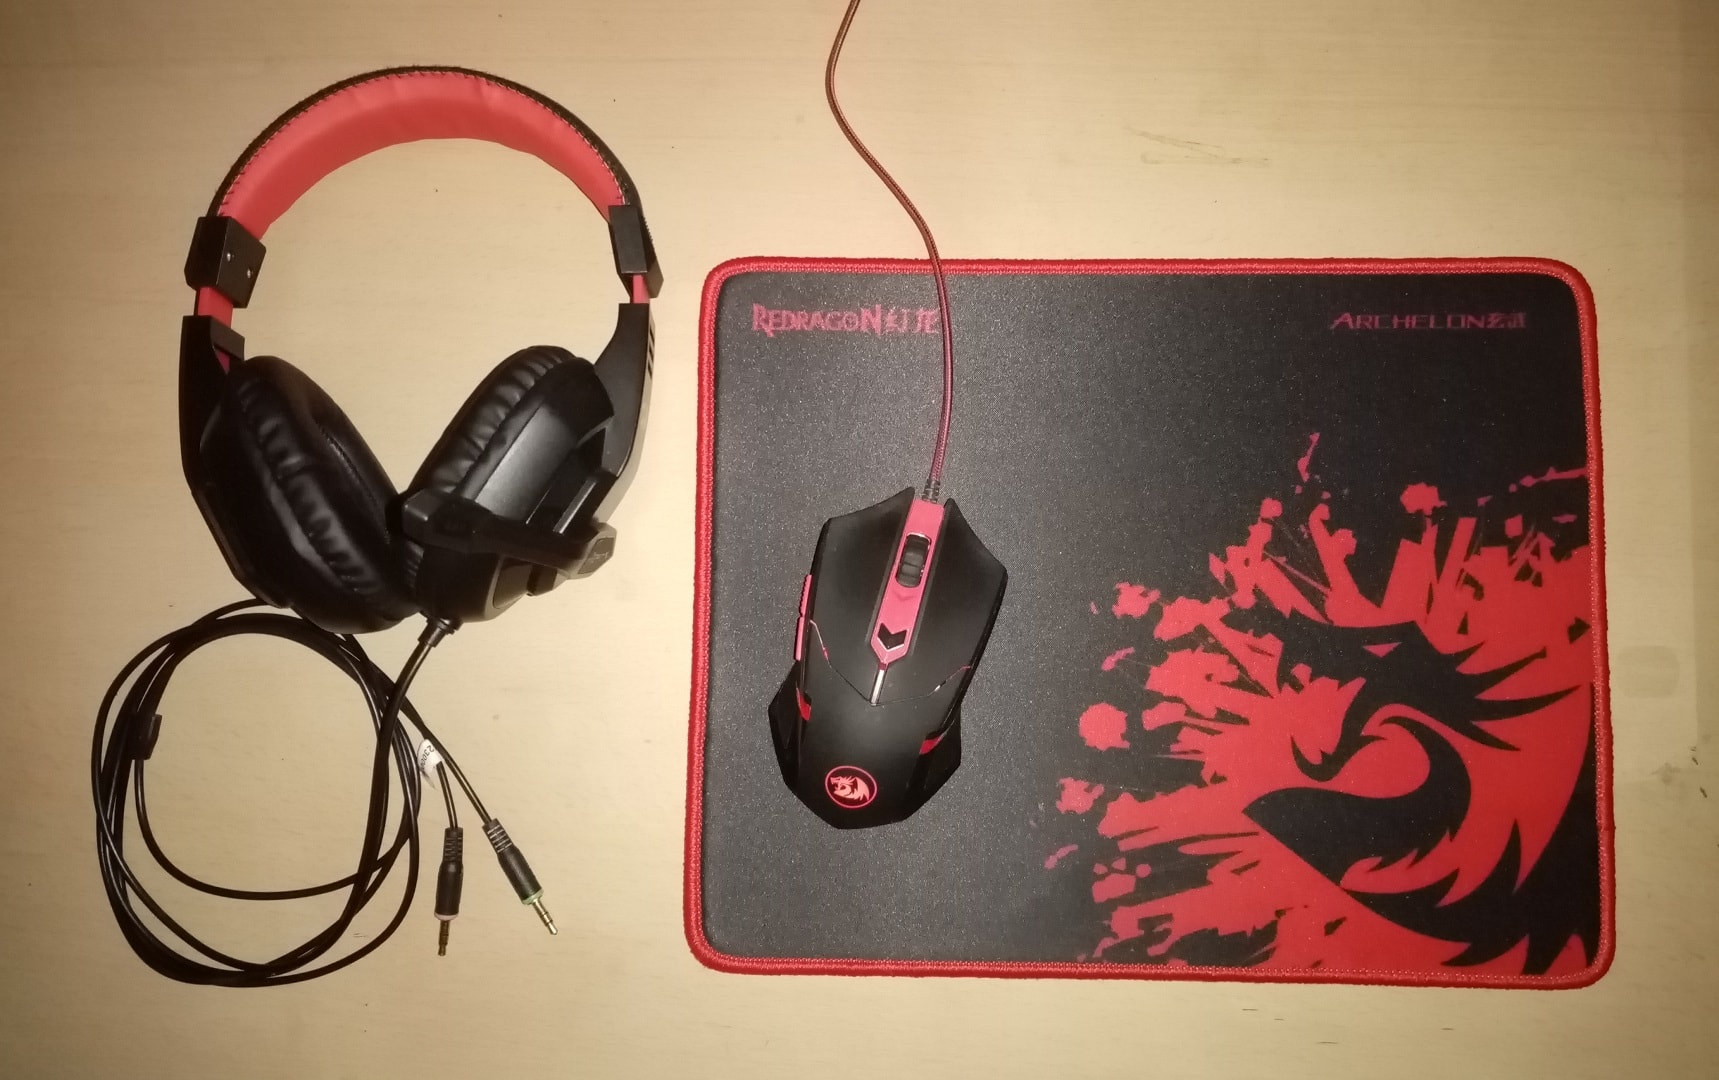 Redragon S101-BA PC Gaming Keyboard and Mouse Combo 3